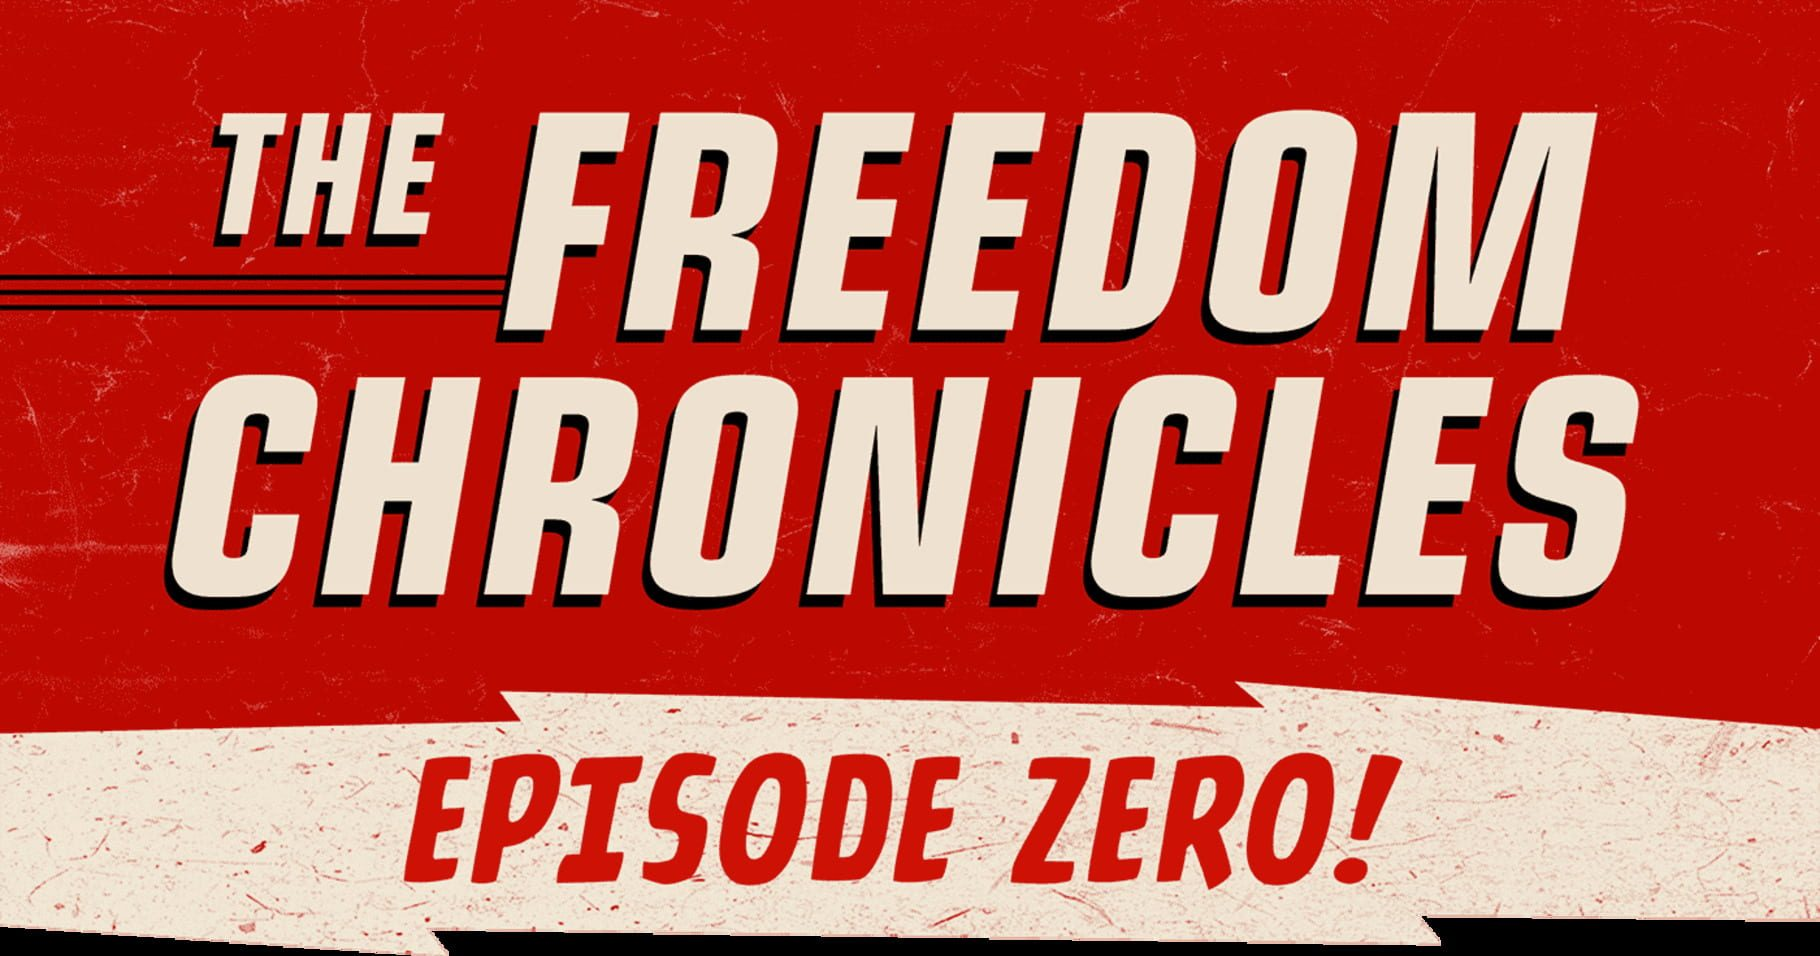 buy Wolfenstein II: The Freedom Chronicles - Episode Zero cd key for all platform